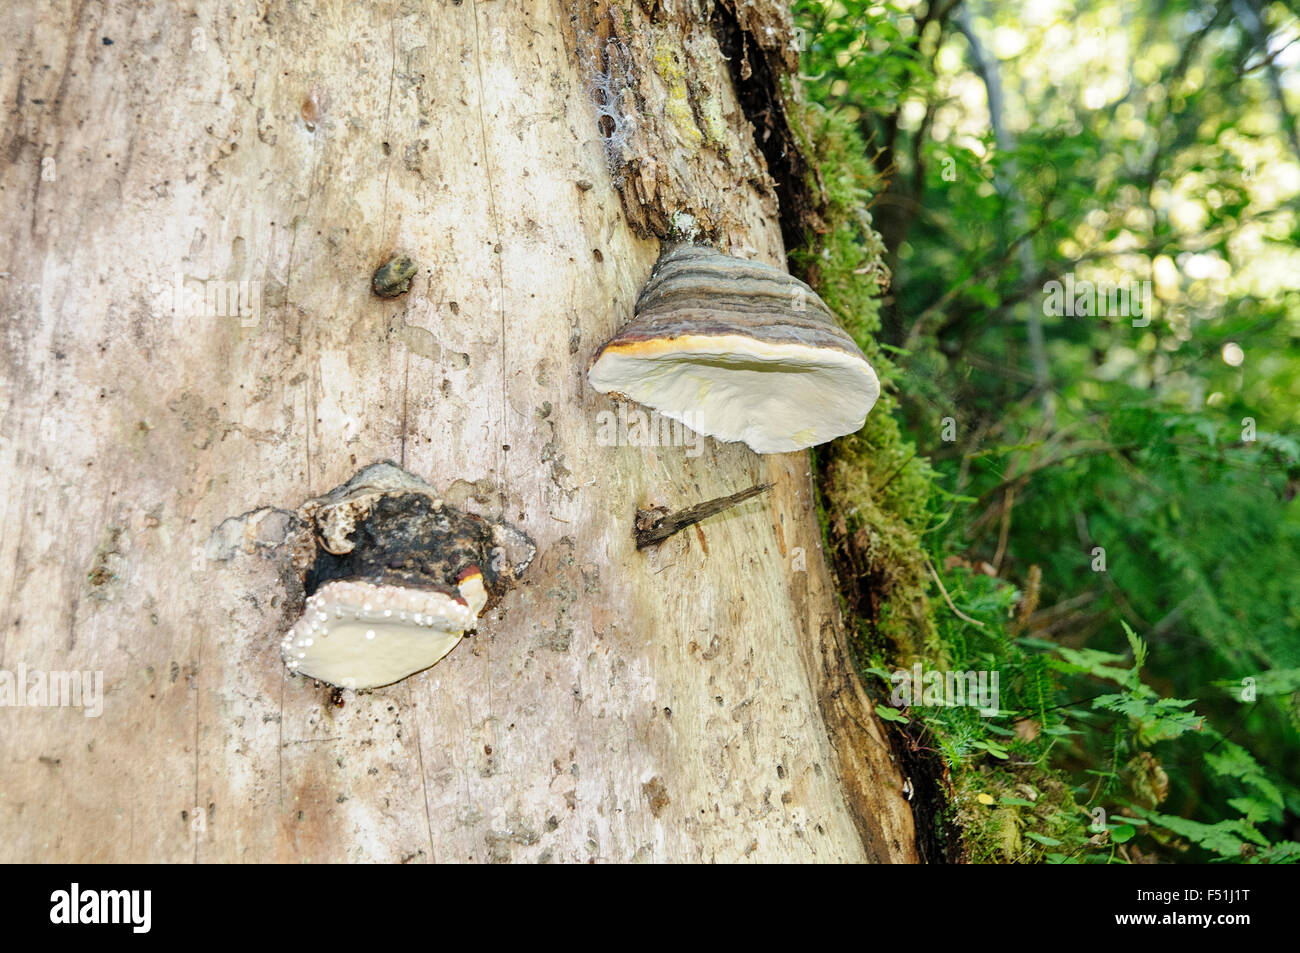 Hoof fungus (fomes fomentarius)or bracket fungus, grows on a living tree trunk. Photographed in Tirol, Austria in - Stock Image